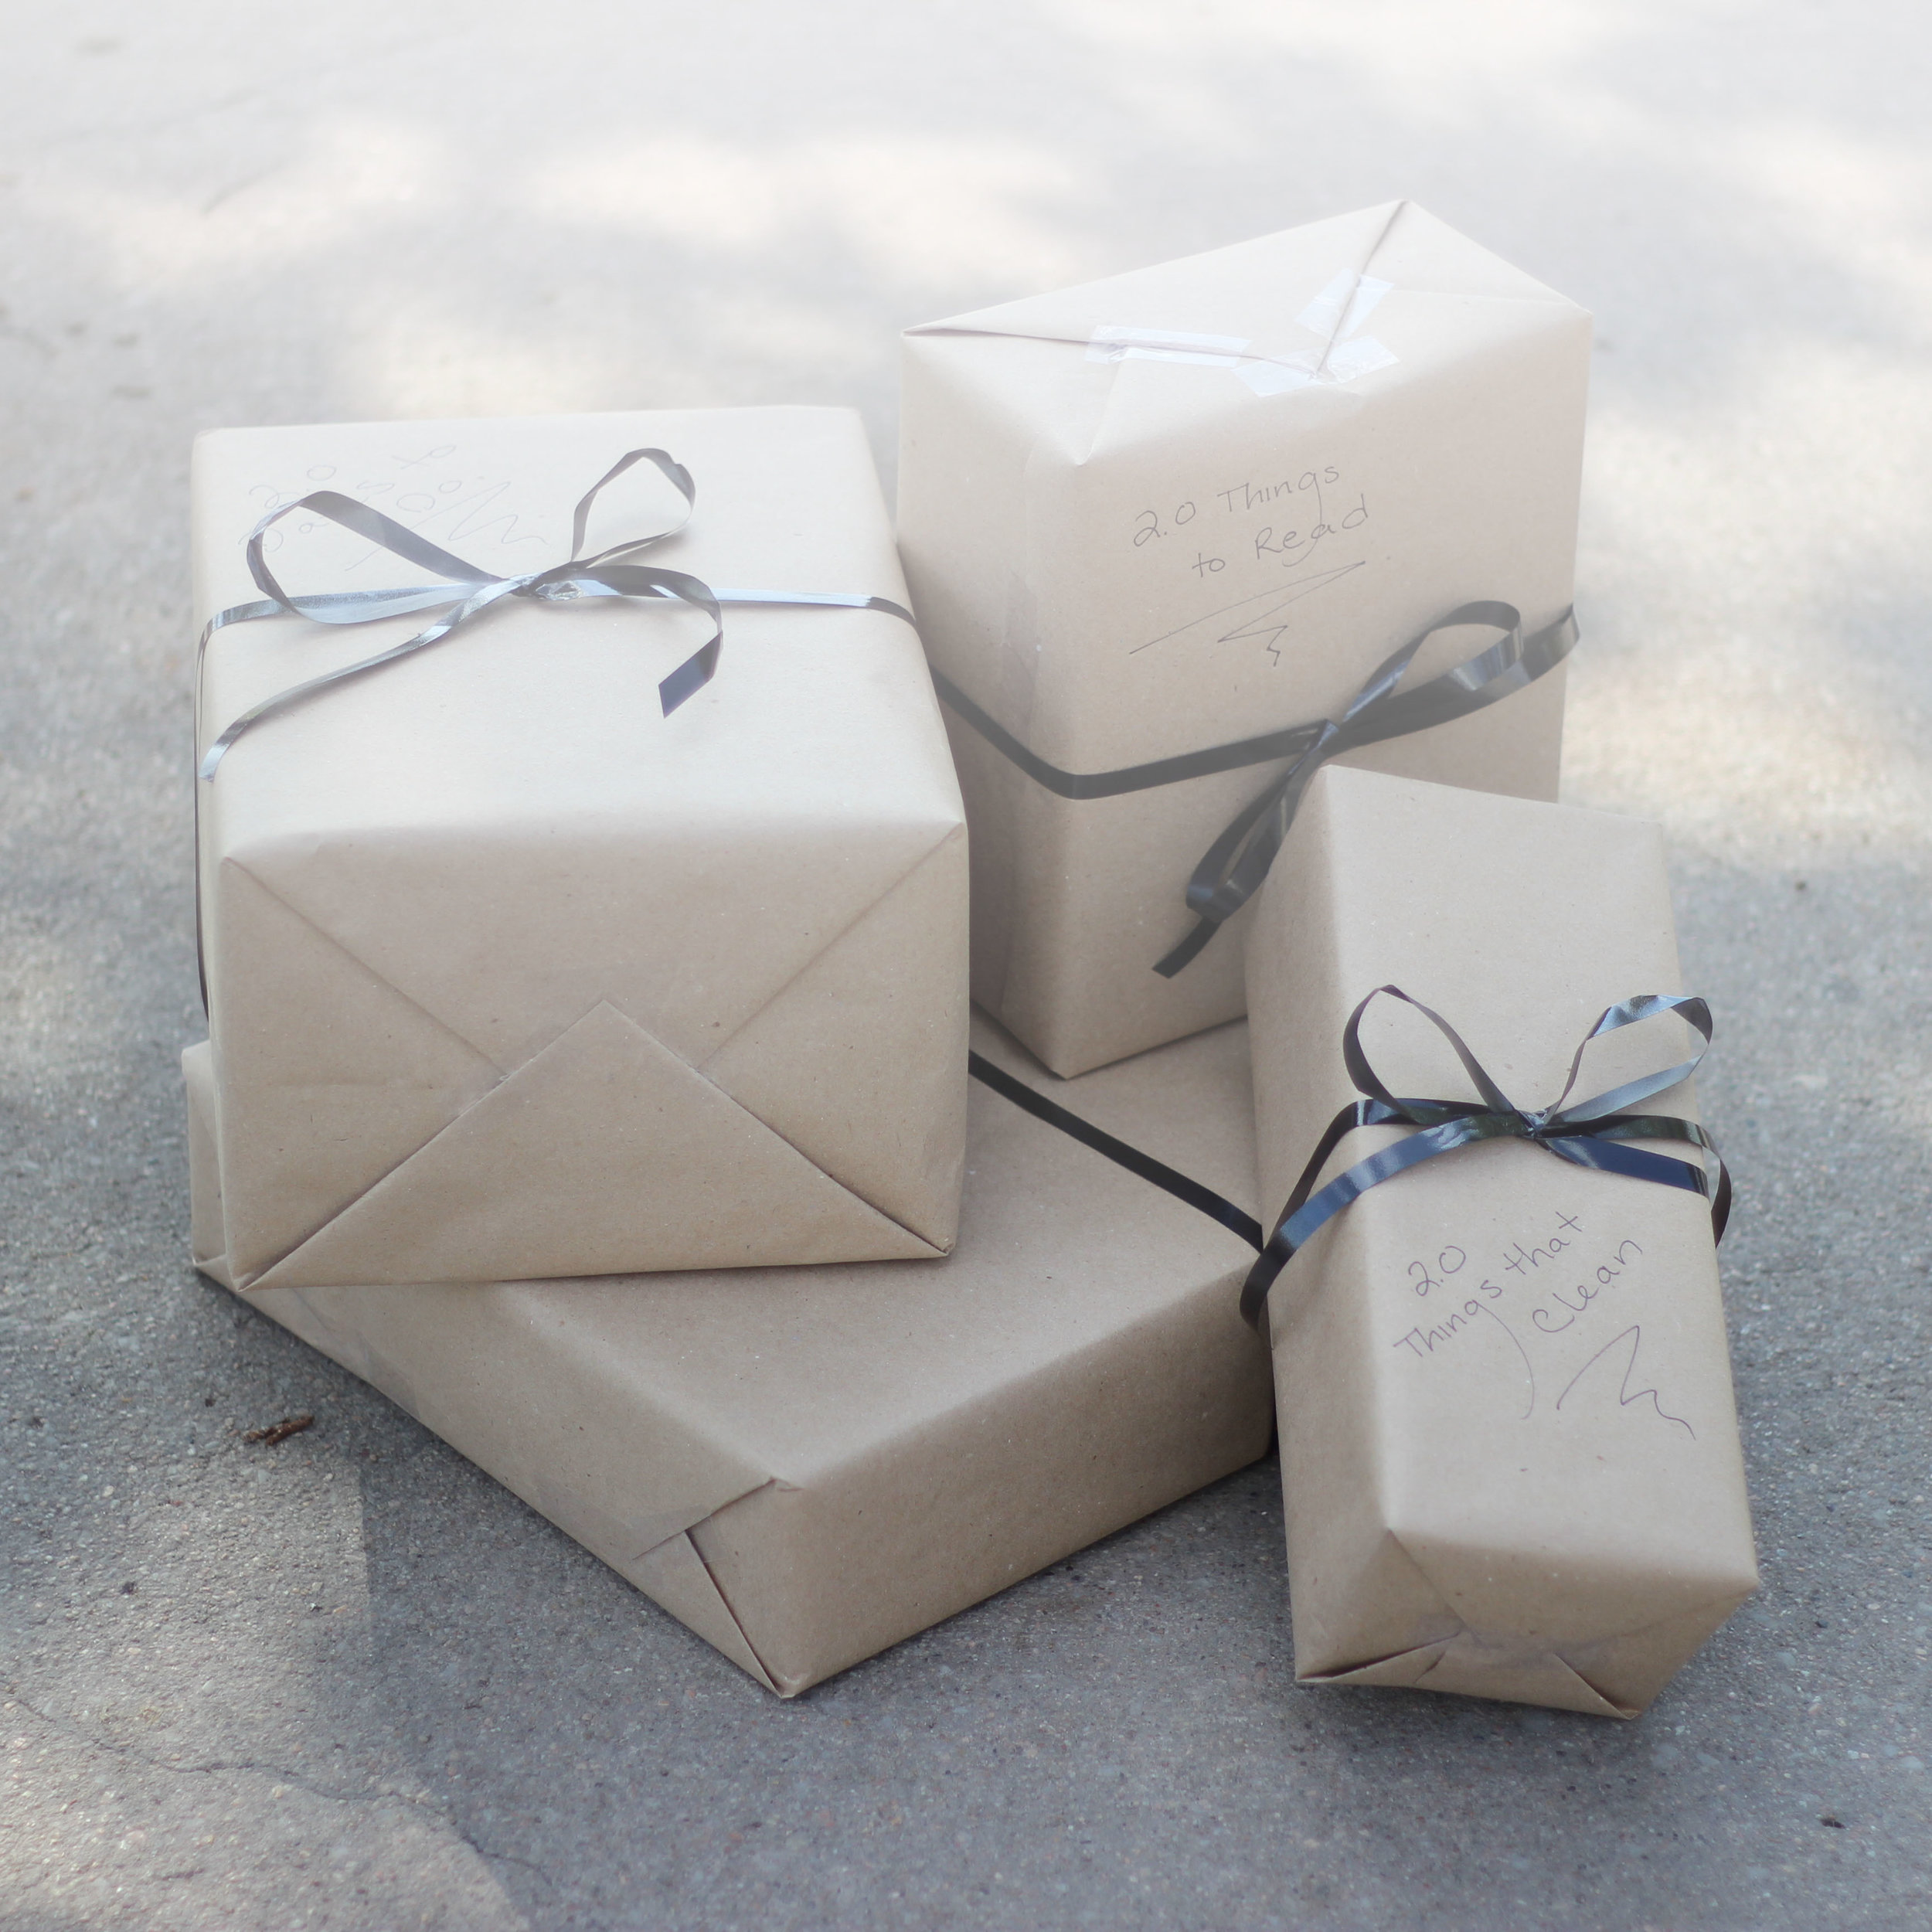 An easy way to give someone special a memorable birthday gift: A Birthday Box!